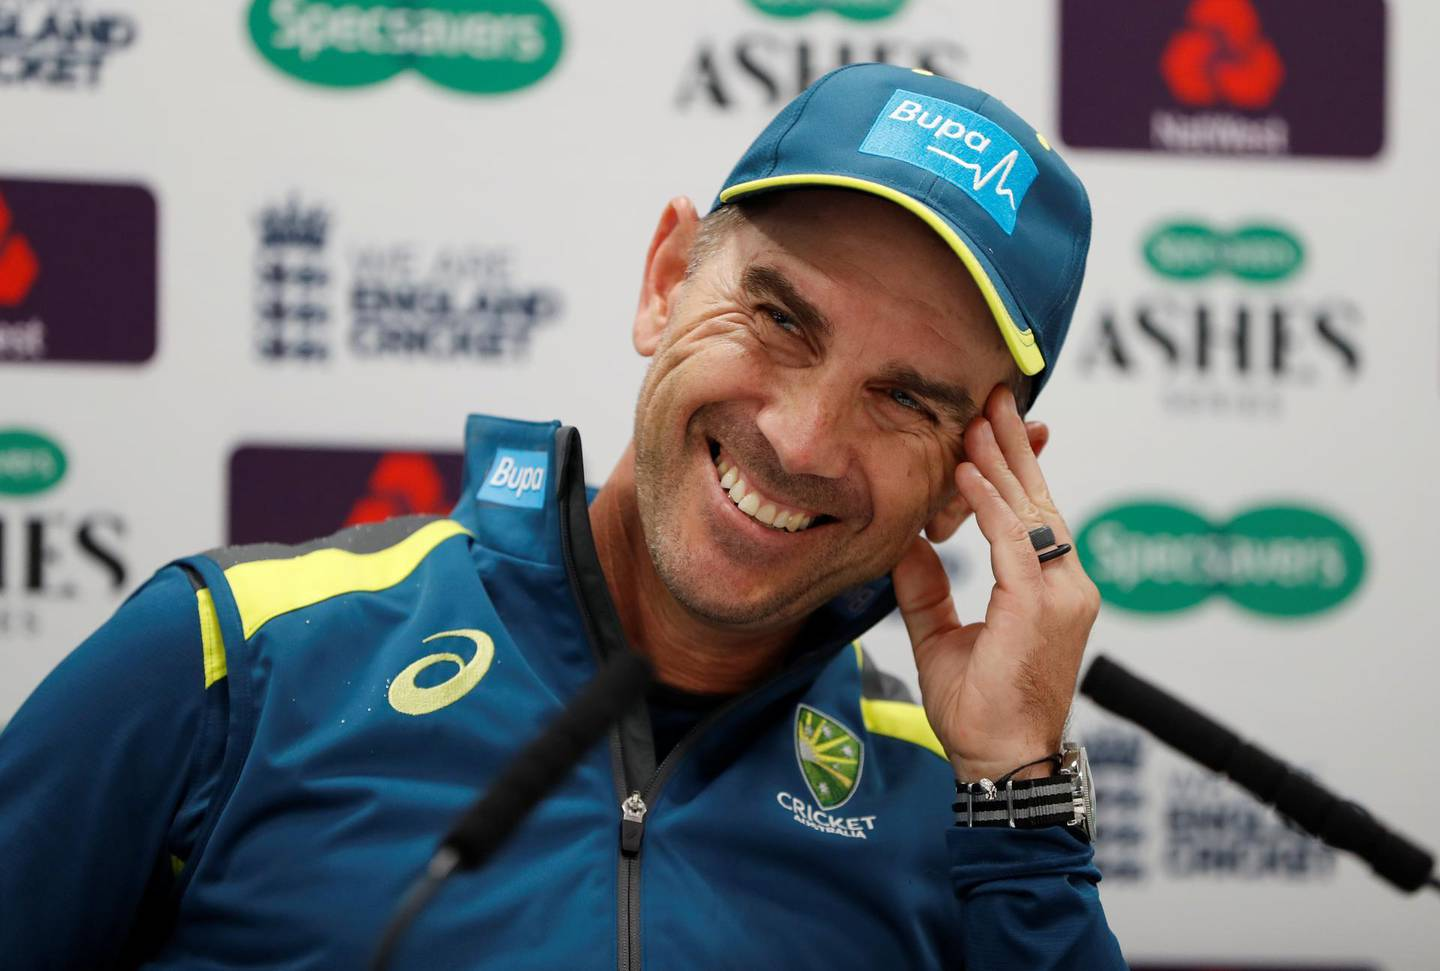 Cricket - Australia Press Conference - Lord's Cricket Ground, London, Britain - August 12, 2019   AustraliaheadcoachJustin Langer during a press conference   Action Images via Reuters/Paul Childs